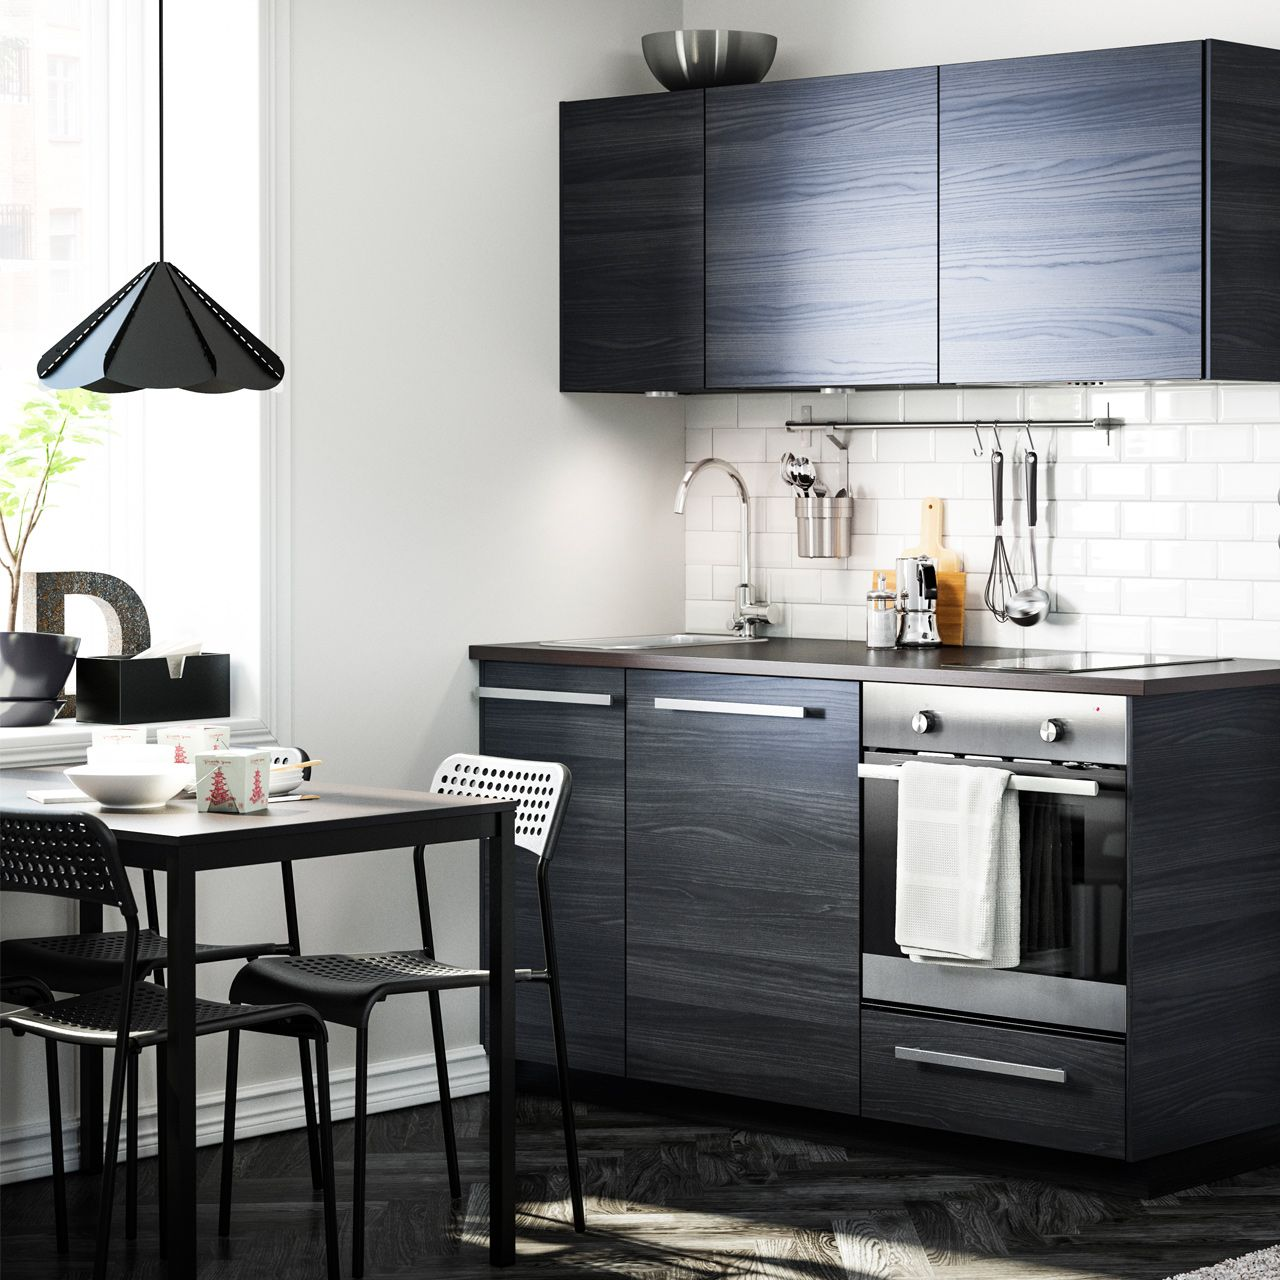 Ikea kitchens hittarp landhausstil kueche - Small Space Big Impact Featured Products Tingsryd G Rlig Jonosf R T Rend Source Everyday